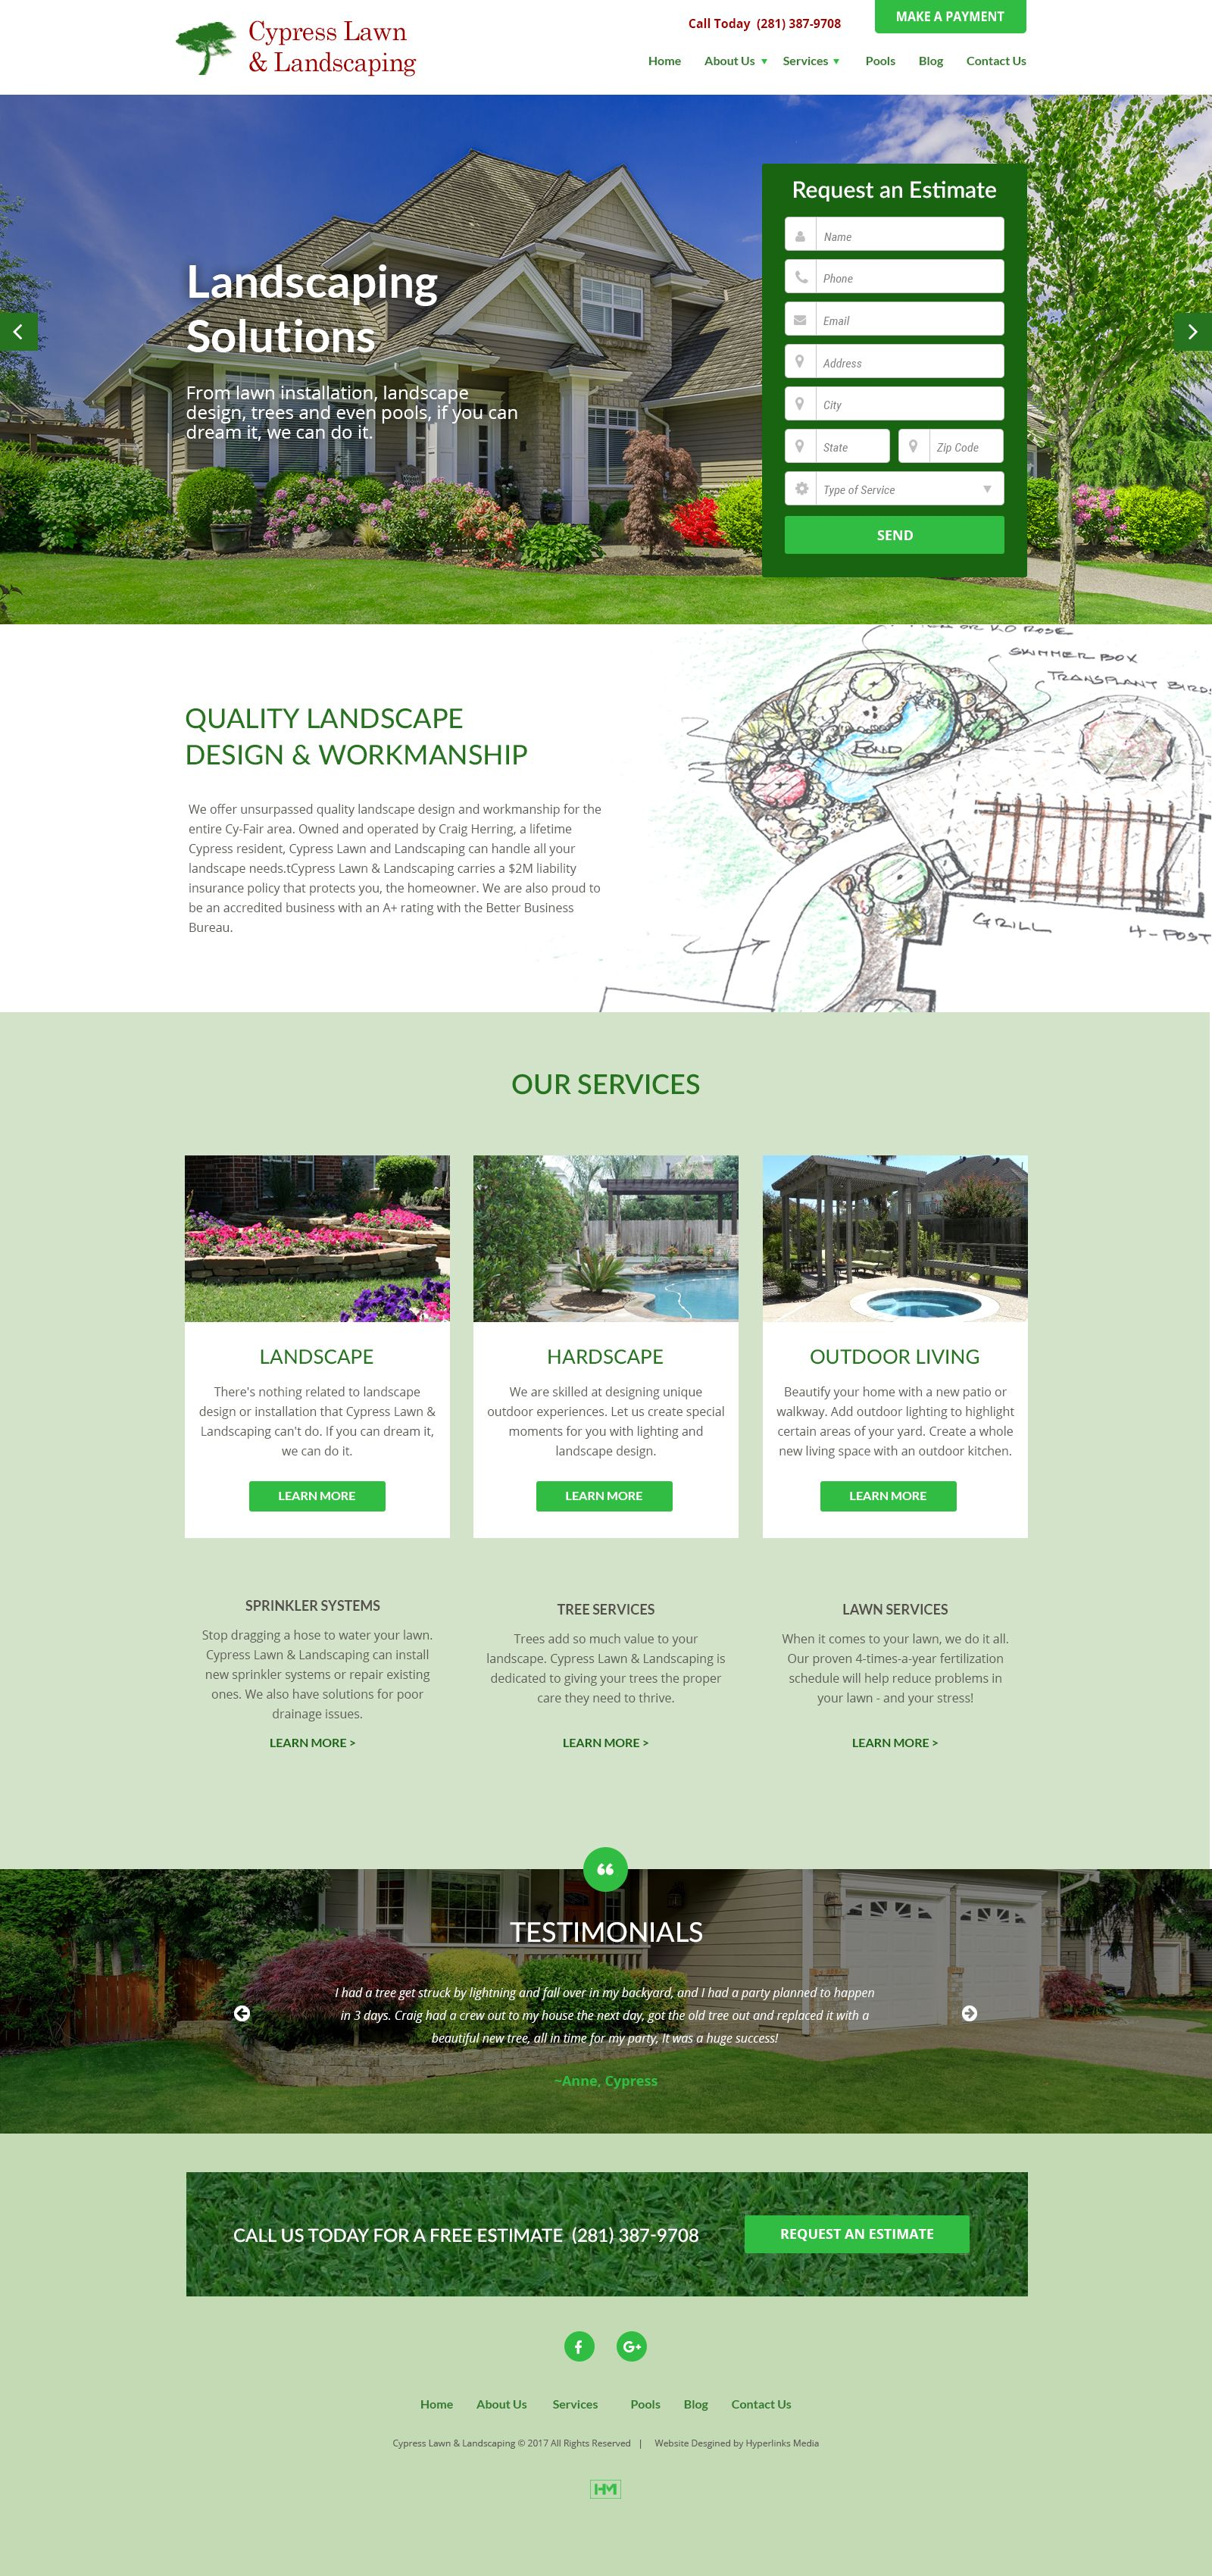 Web Design For Landscaping Company This Landscape Web Design Created And Developed By Hyperlinks Media Featu Landscaping Company Landscape Services Web Design